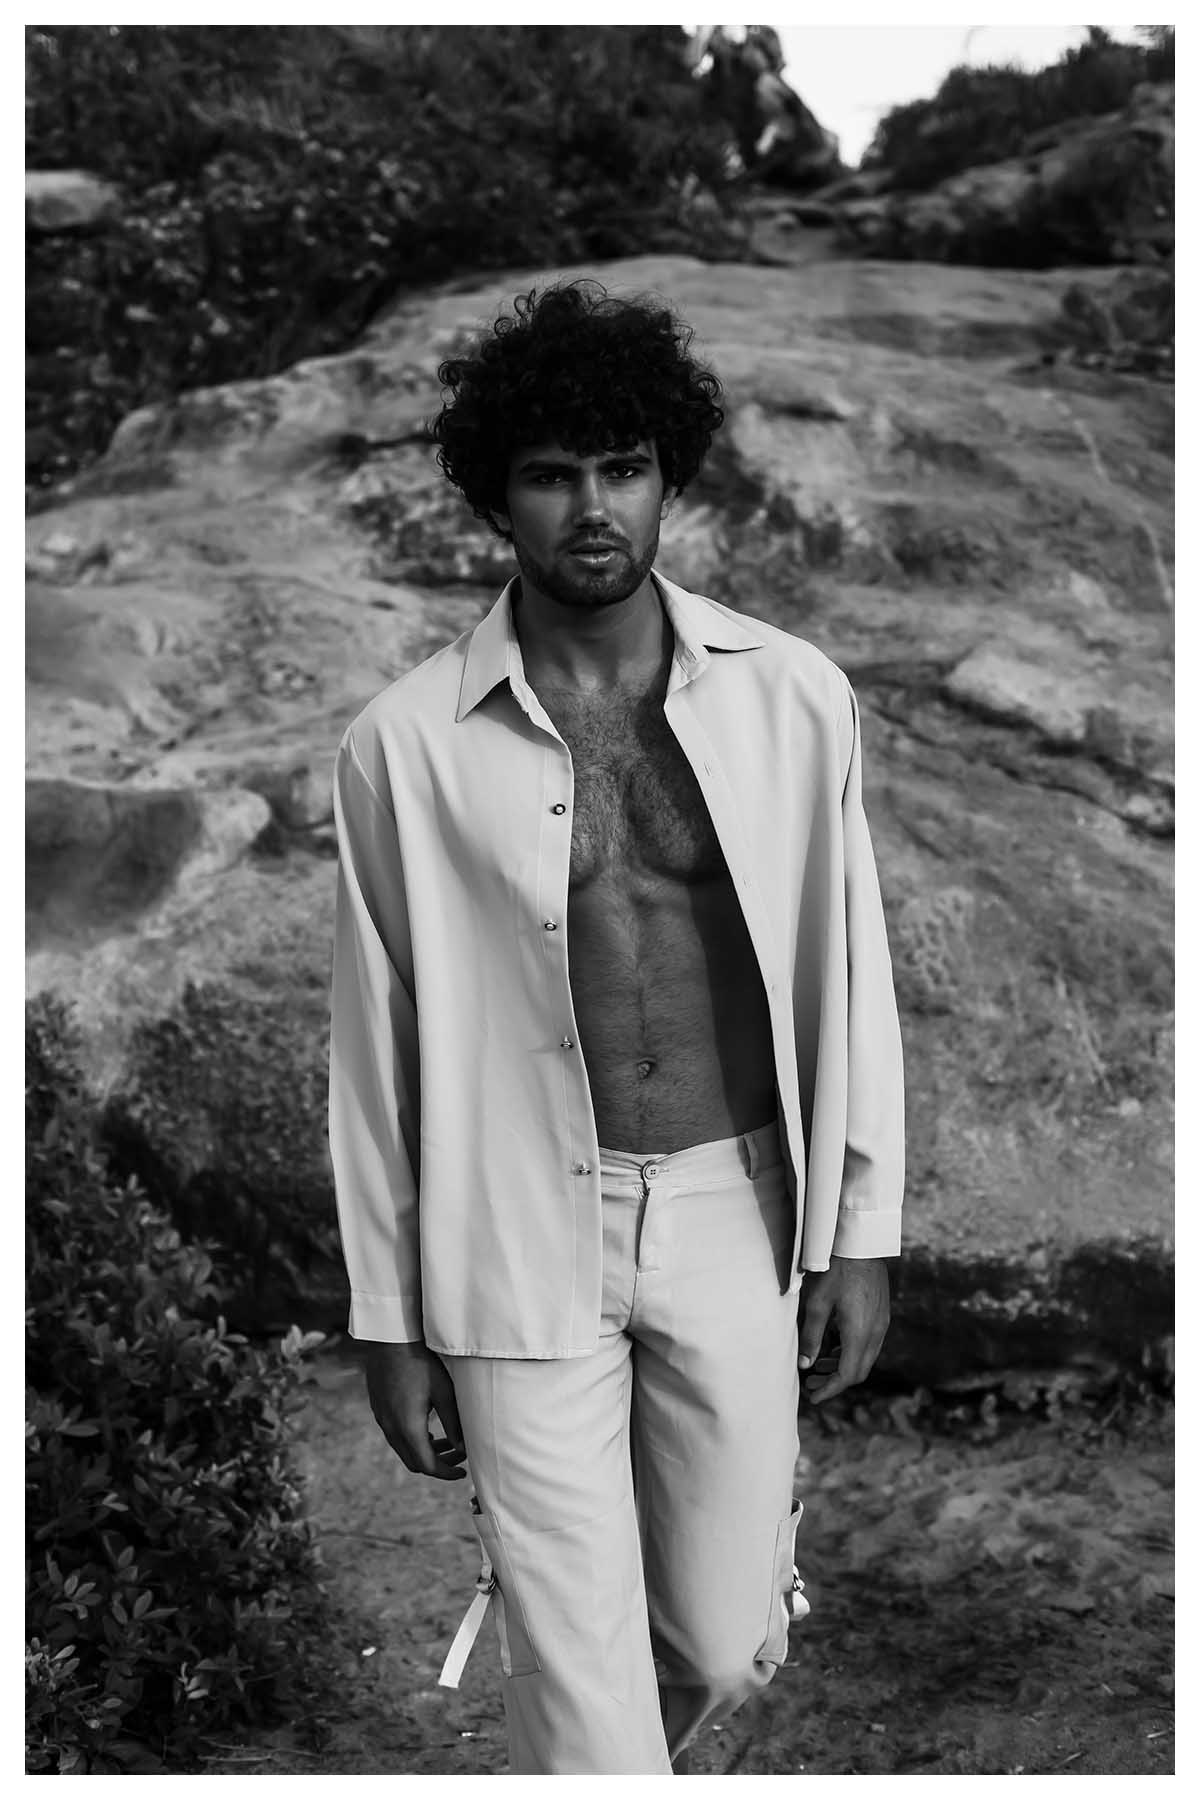 Patrick Luvise by Anderson Marques for Brazilian Male Model